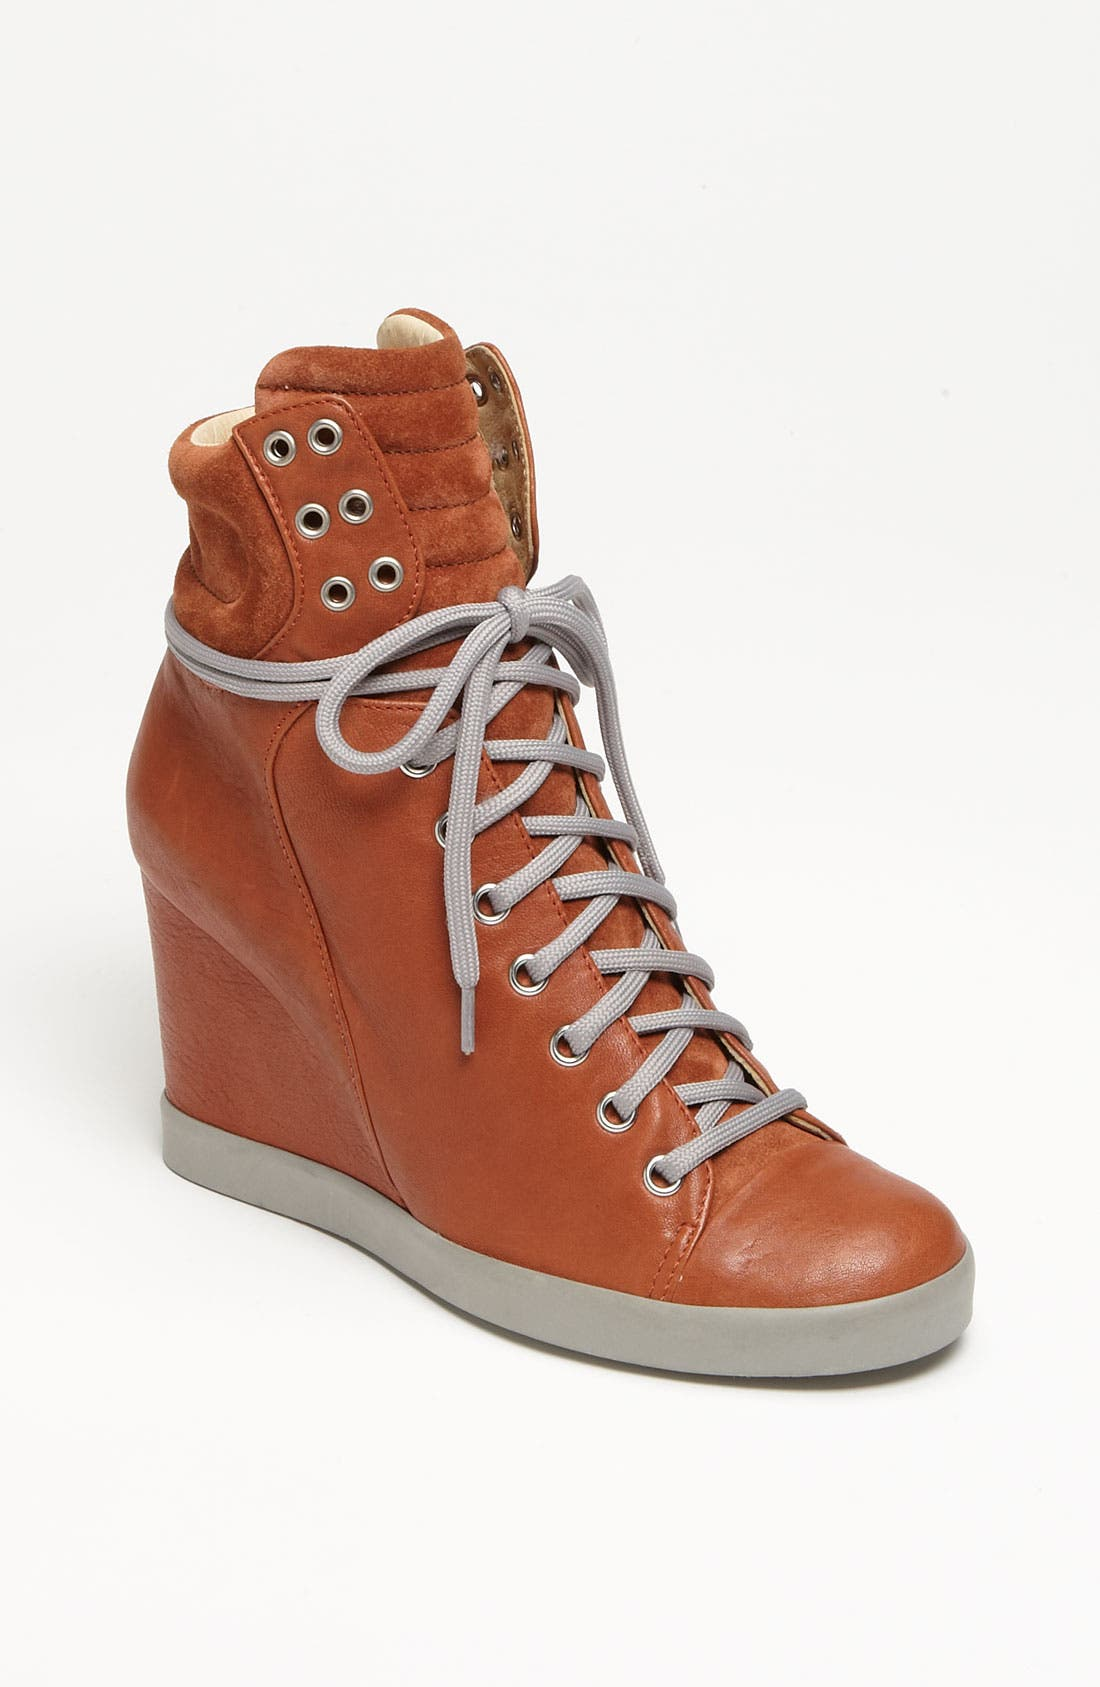 Alternate Image 1 Selected - See by Chloé Wedge Sneaker